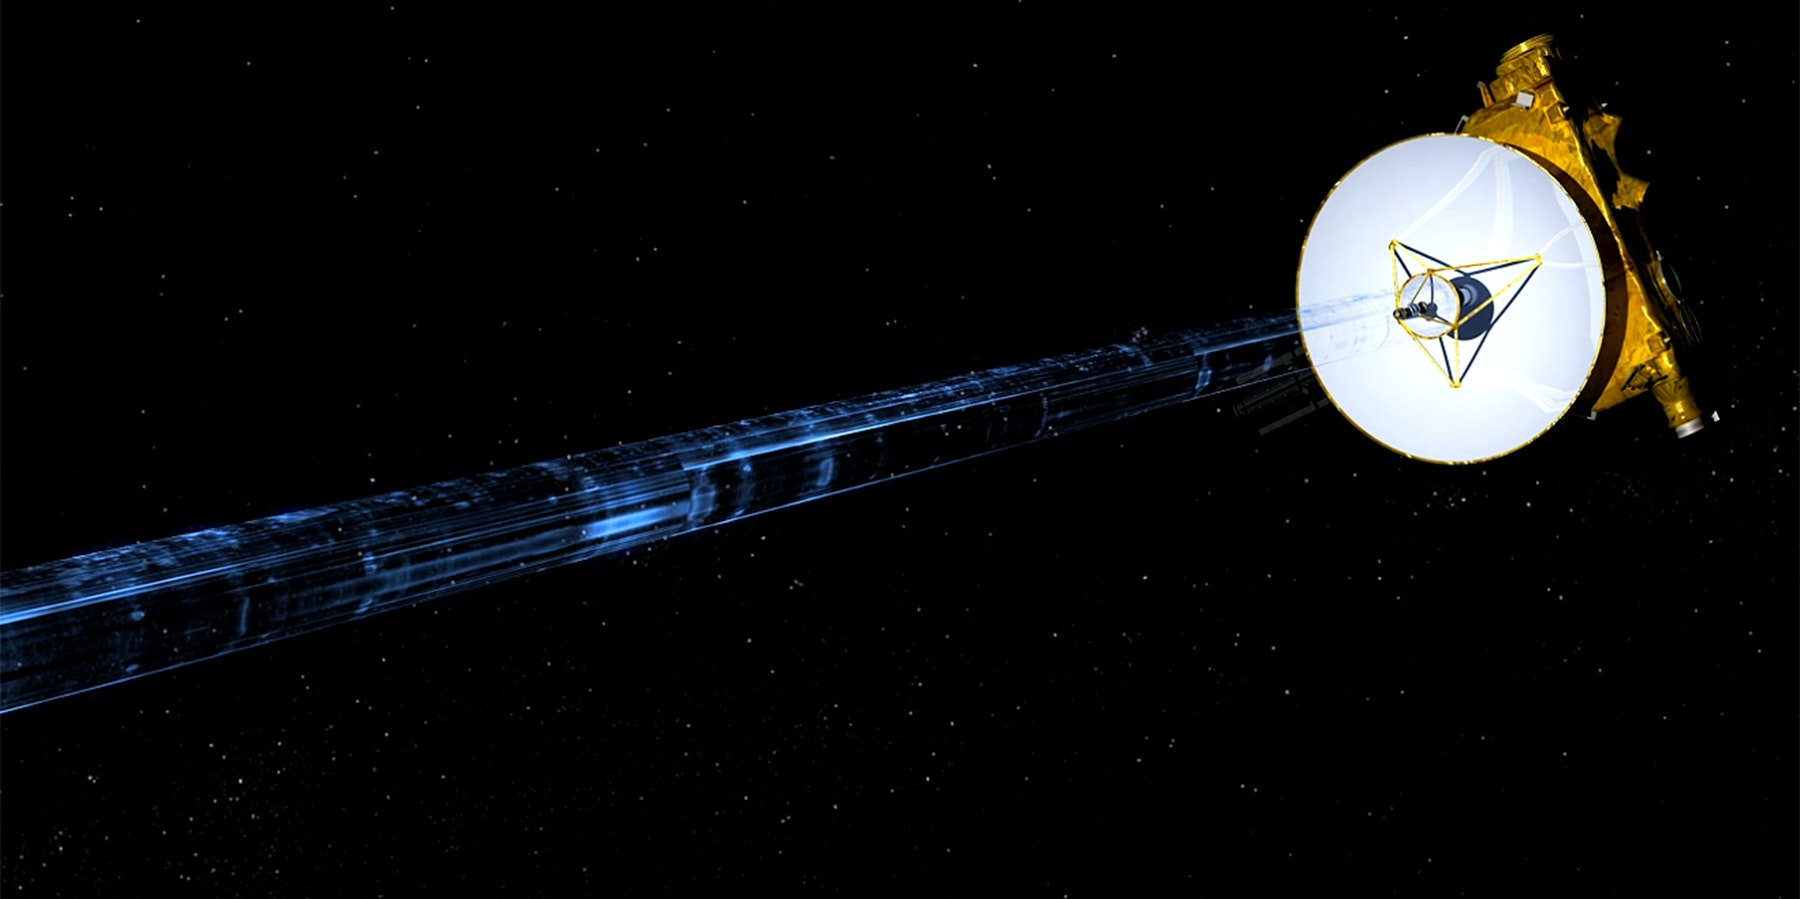 The New Horizons spacecraft has beamed back the bits of data collected during the Pluto flyby.